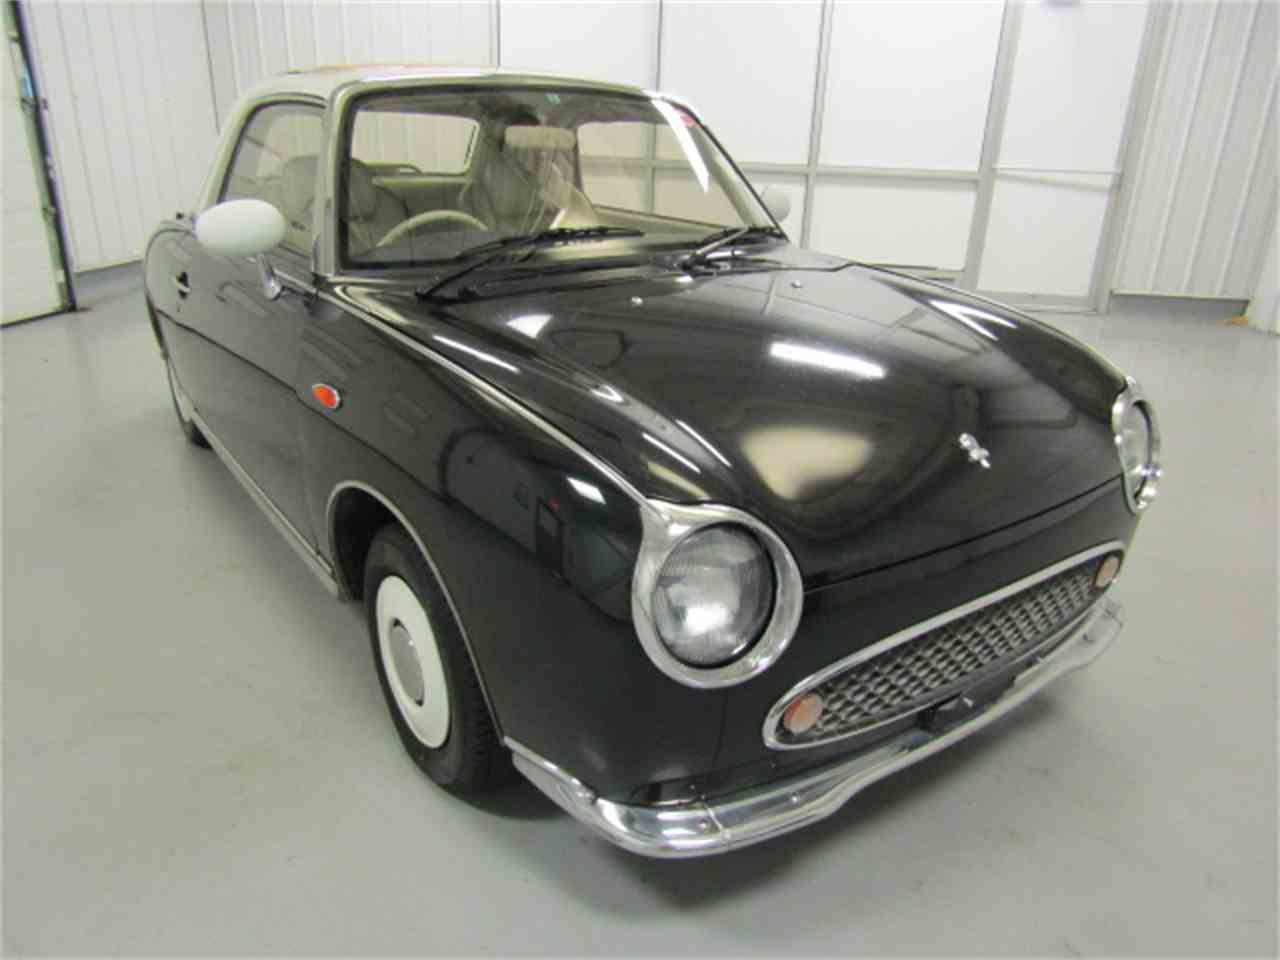 1991 Nissan Figaro for Sale - CC-913870